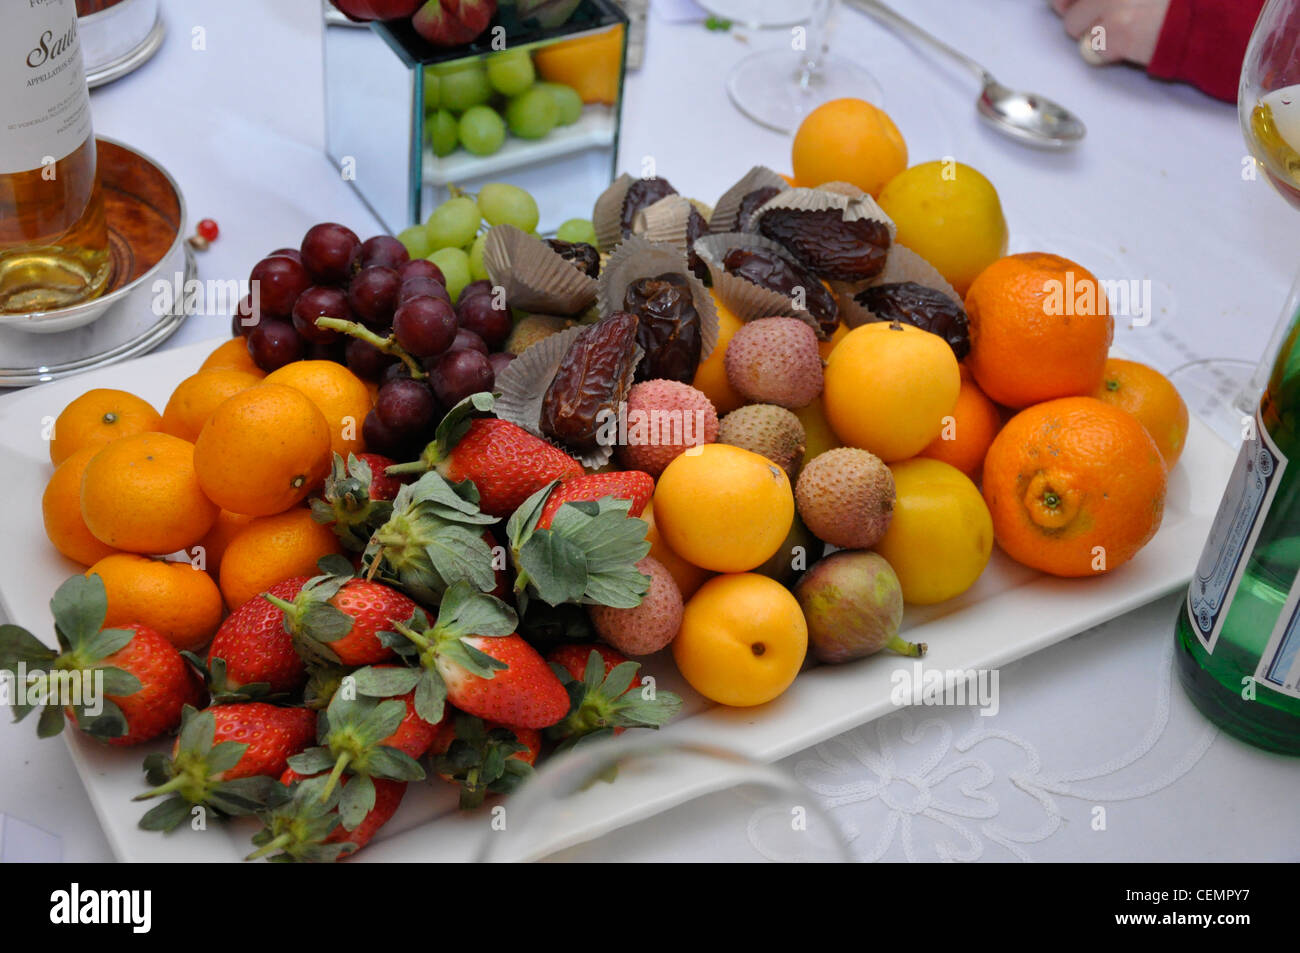 Fruit selection gastronomy dinner party table display Stock Photo